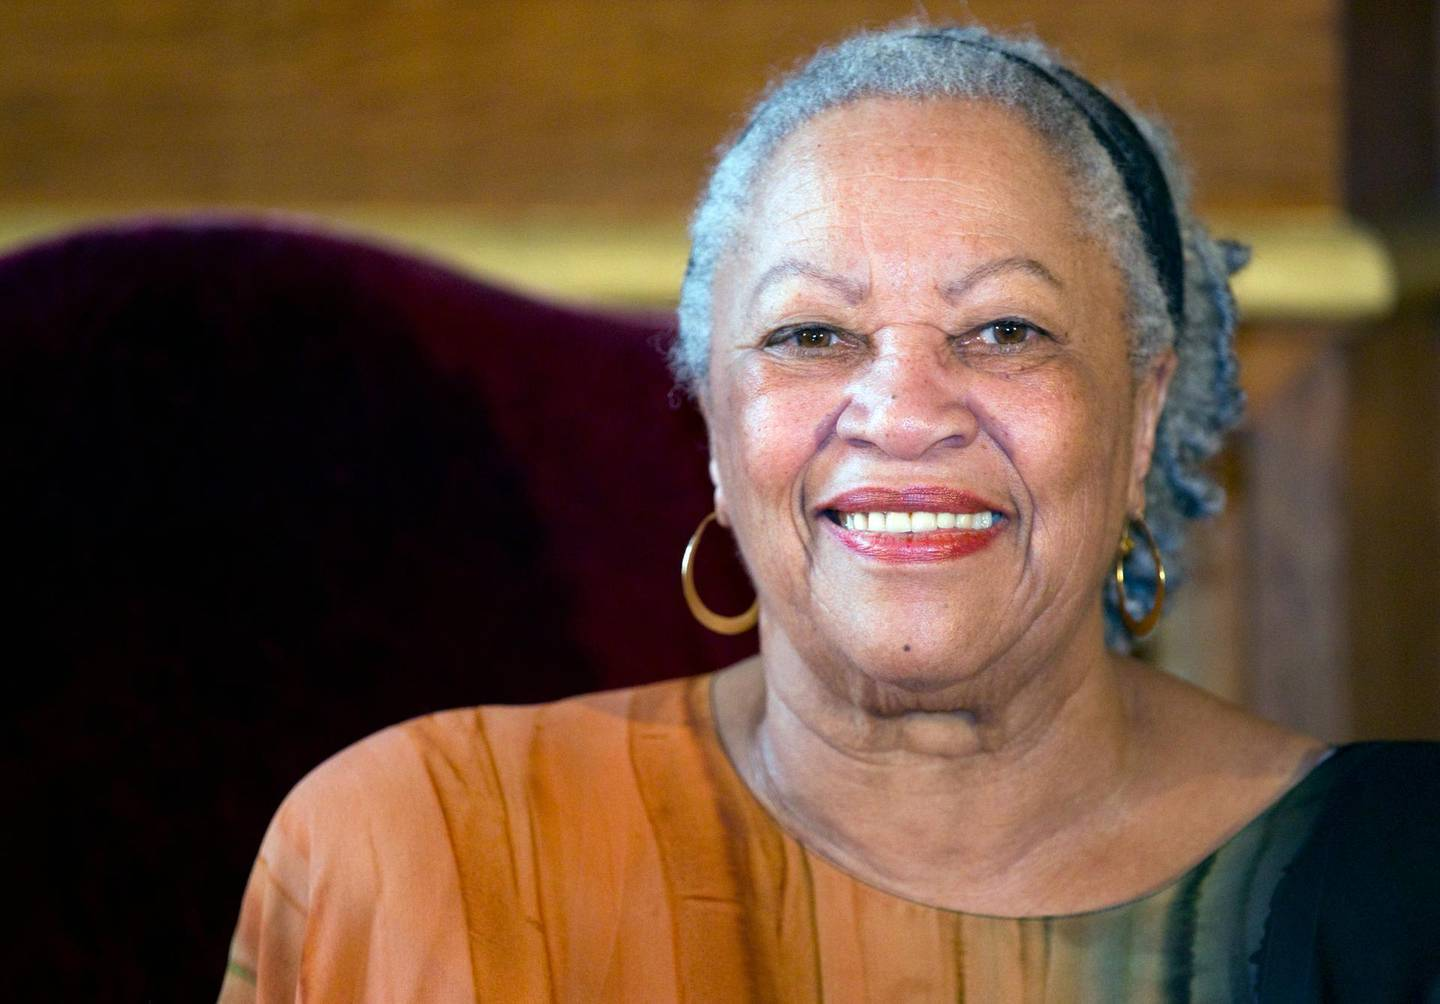 epa07759057 (FILE) - Literary Nobel prize winning US author Toni Morrison attends an award ceremony to receive the Grand Vermeil medal for her contribution to culture, at the City Hall of Paris, France, 04 November 2010 (reissued 06 August 2019). Reports on 06 August 2019 state Toni Morrison has died, aged 88. Morrison, winner of the Nobel Prize for Literature, was the first African American woman to win the prize.  EPA/IAN LANGSDON *** Local Caption *** 02429734